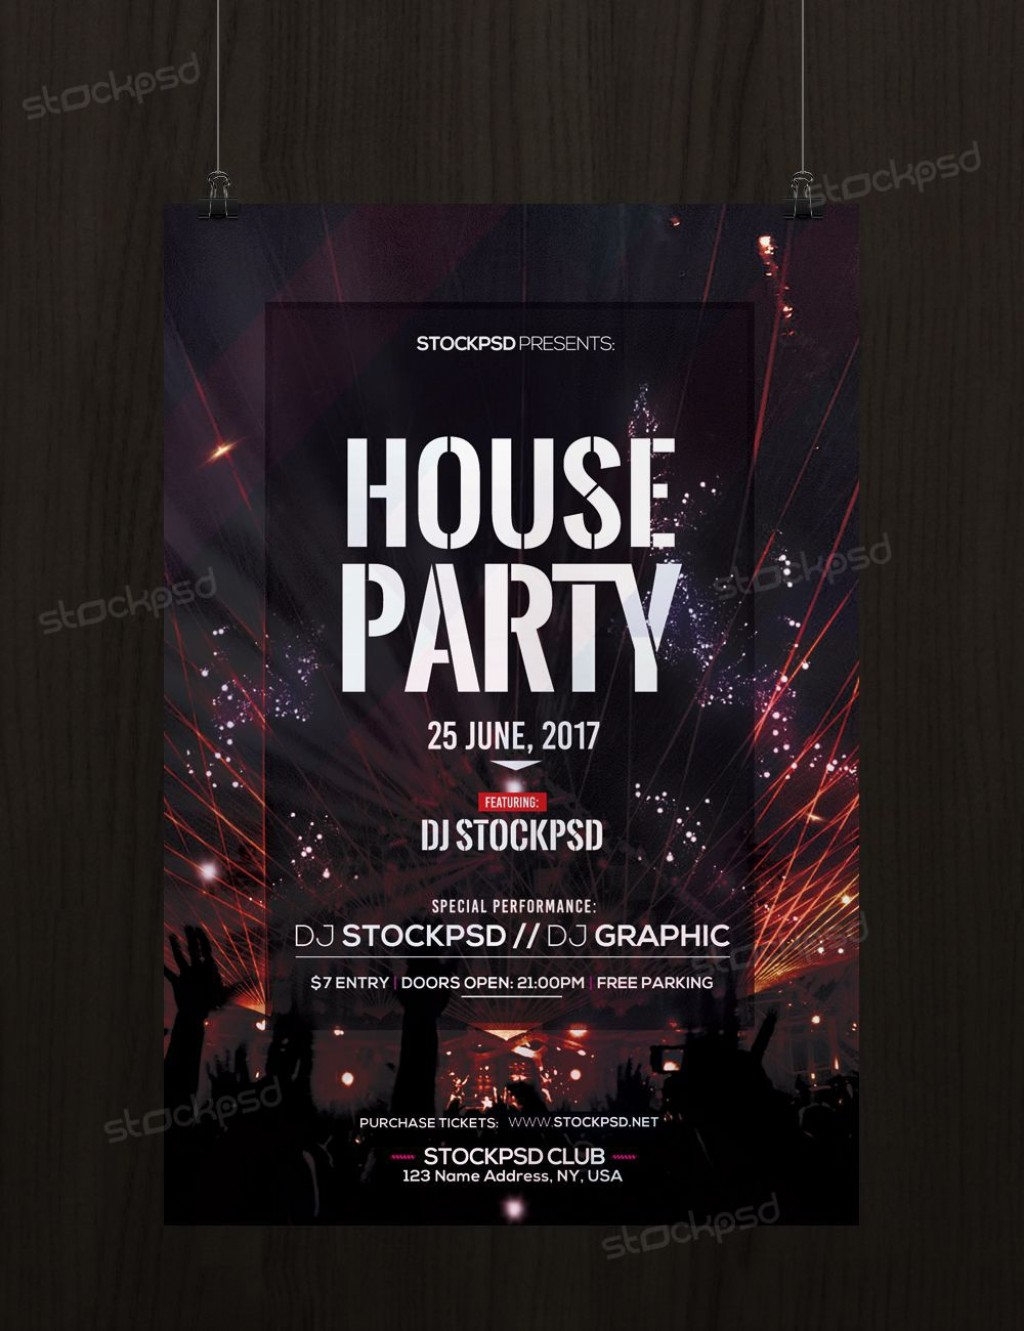 003 Rare Free Party Flyer Psd Template Download High Resolution  - Neon GlowLarge